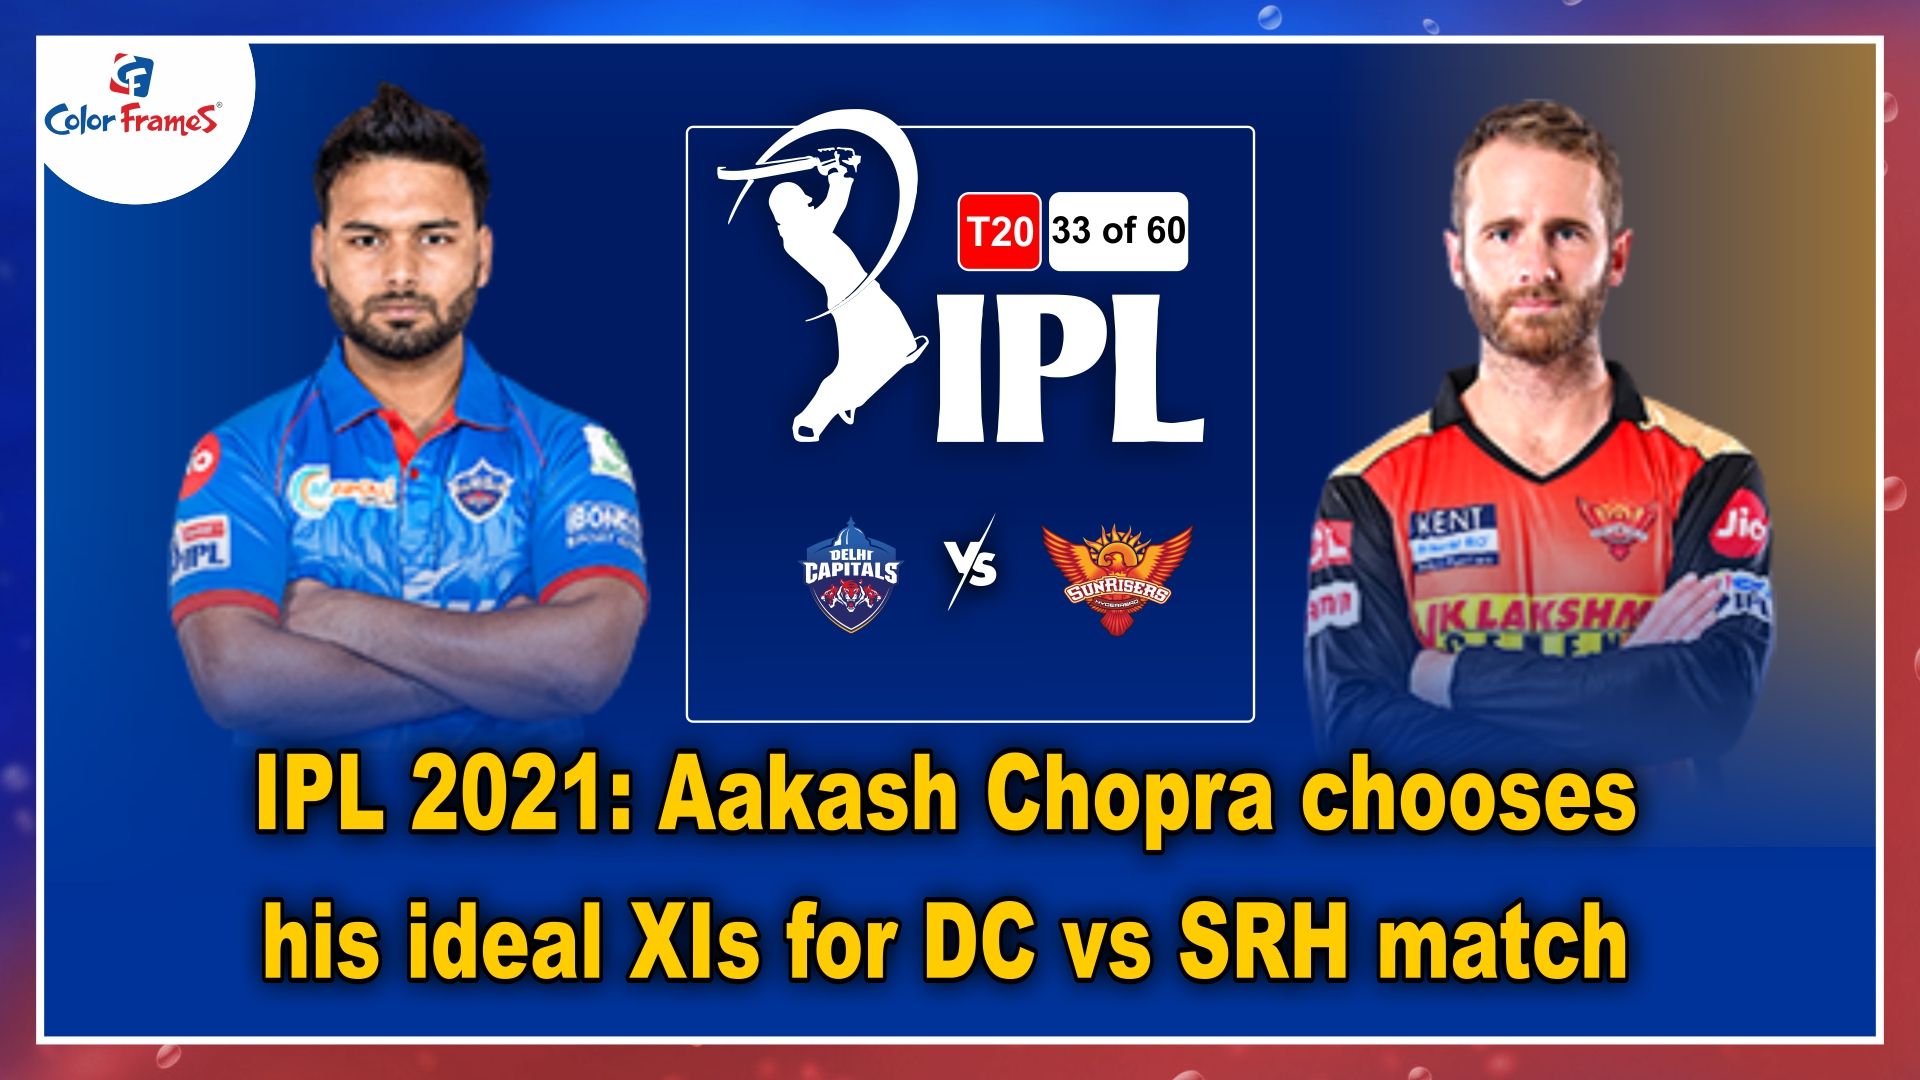 IPL 2021: Aakash Chopra chooses his ideal XIs for DC vs SRH match